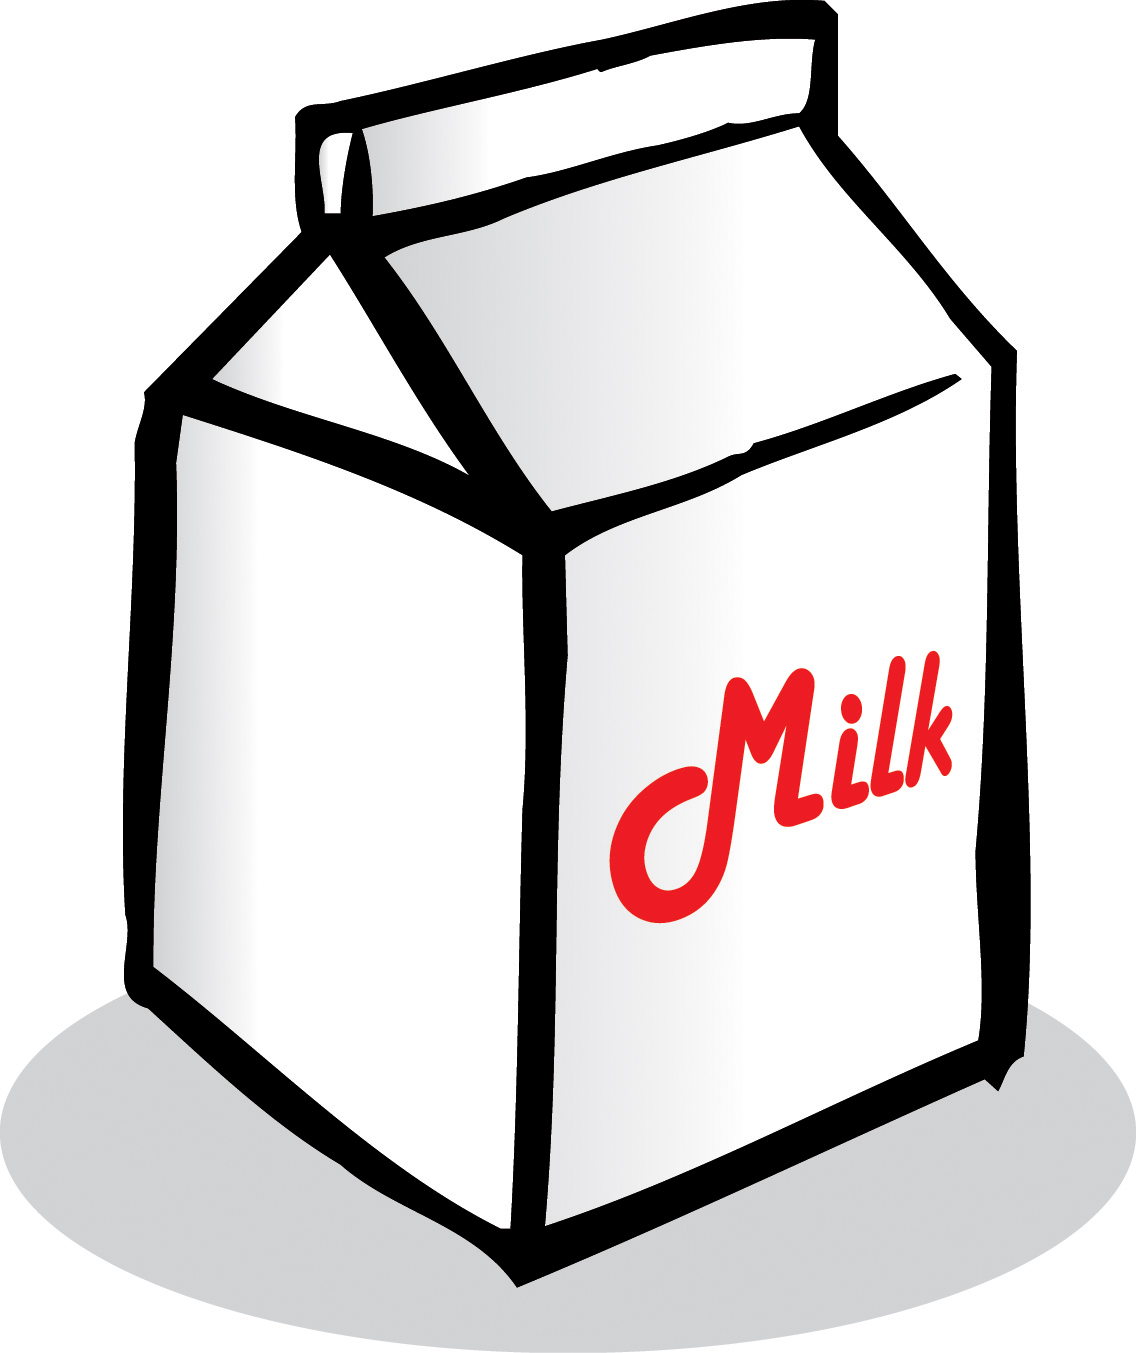 Milk Carton Clipart Black And White | Clipart Panda - Free ...